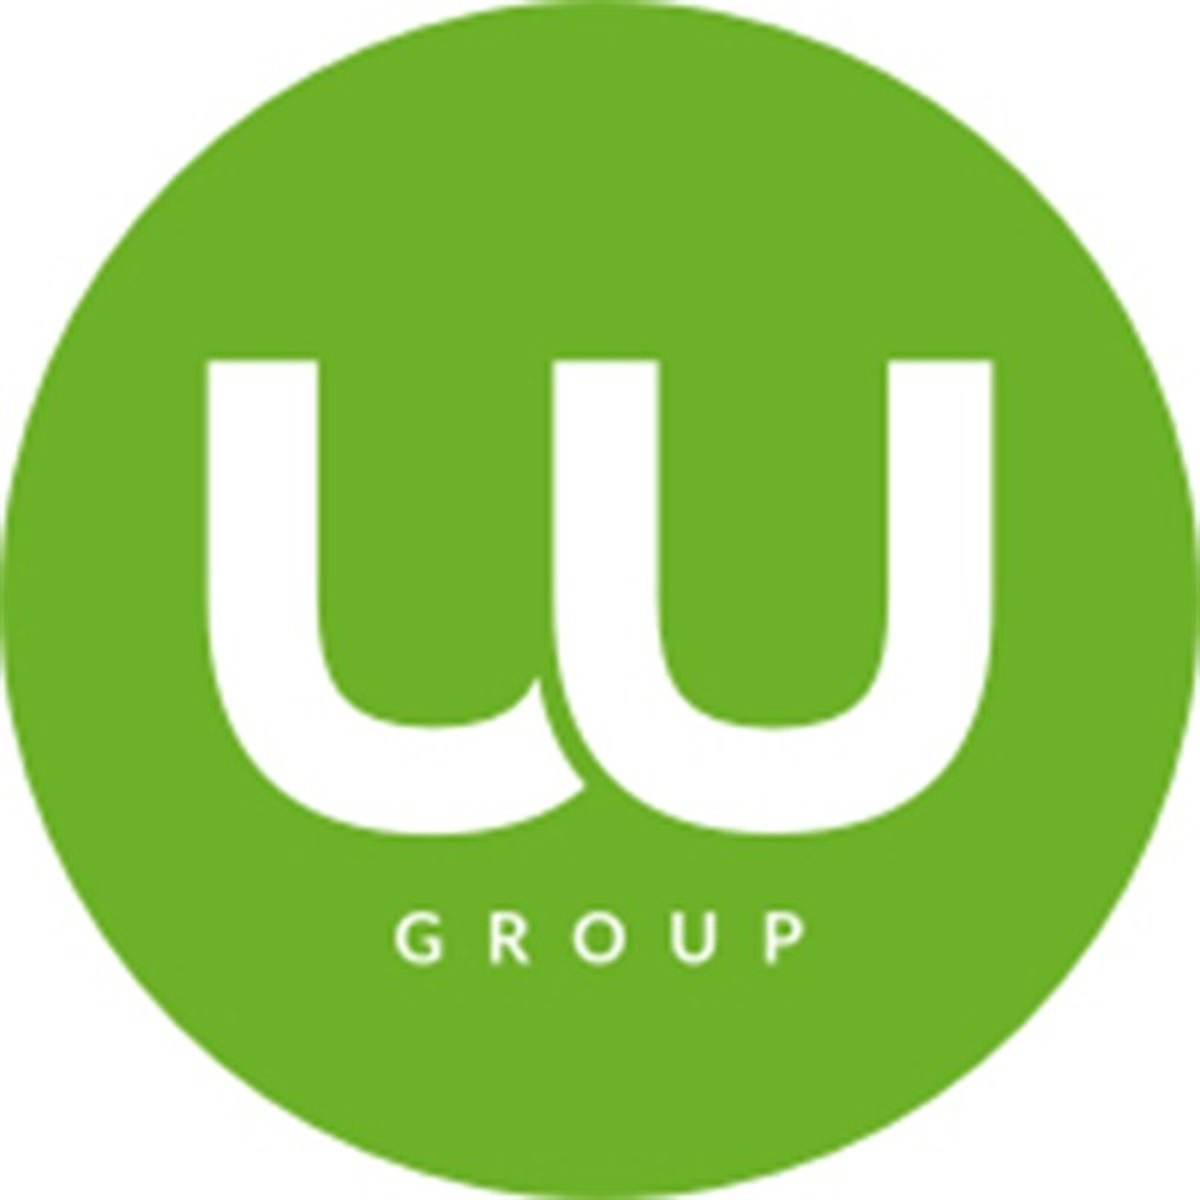 Manager, Strategic Partnerships (m/w/d)